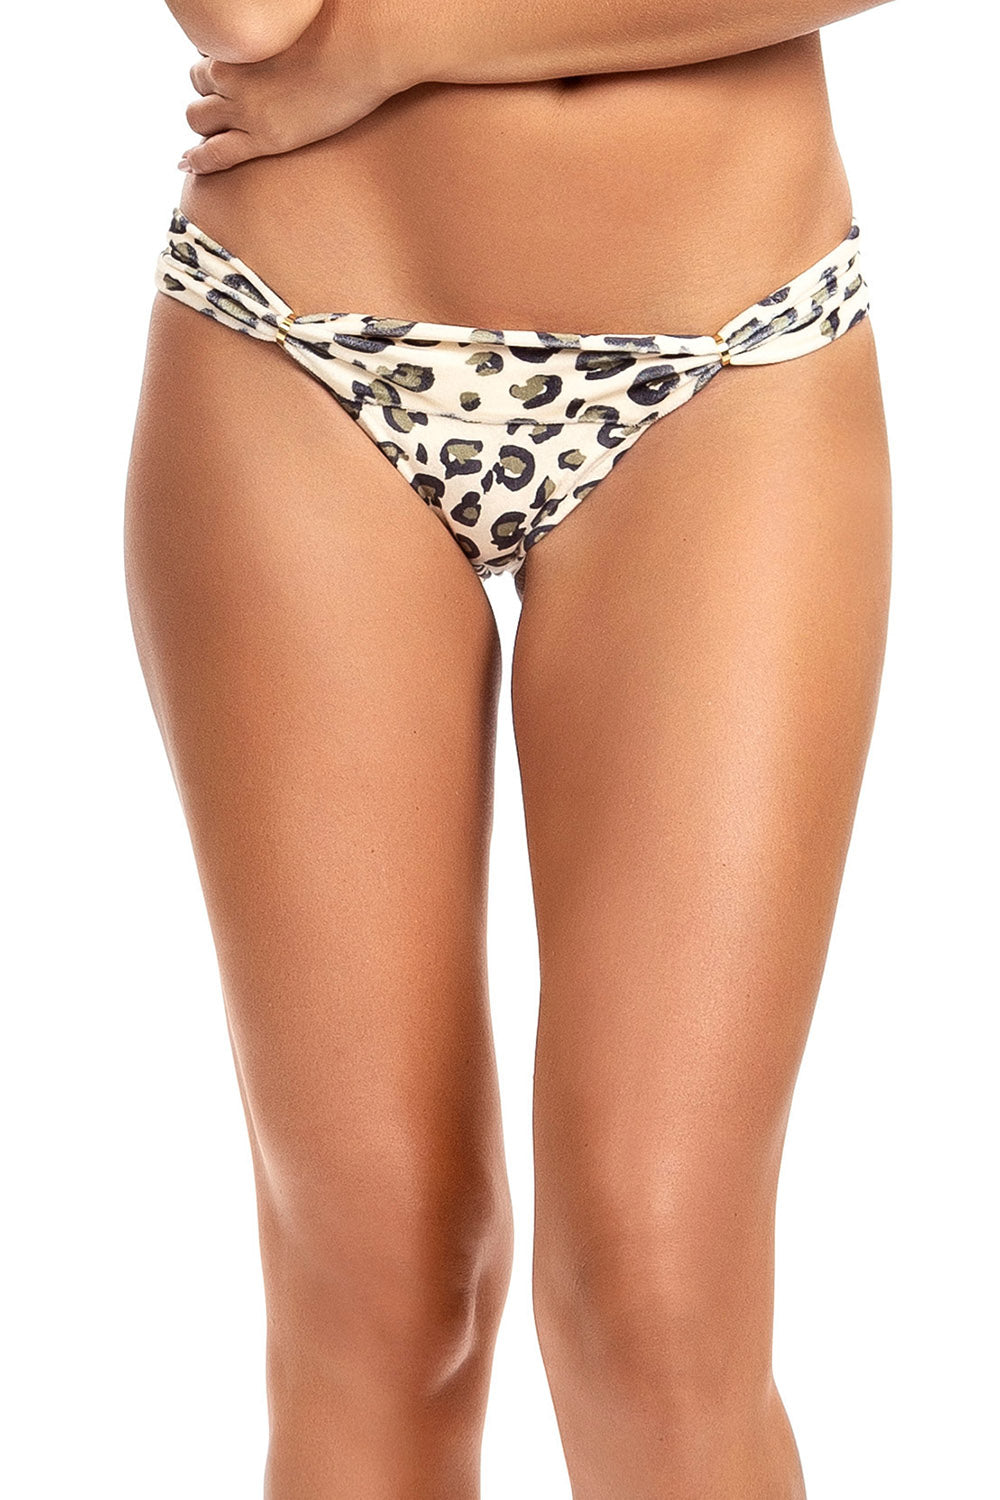 Nature Tribe Velvet Bottom